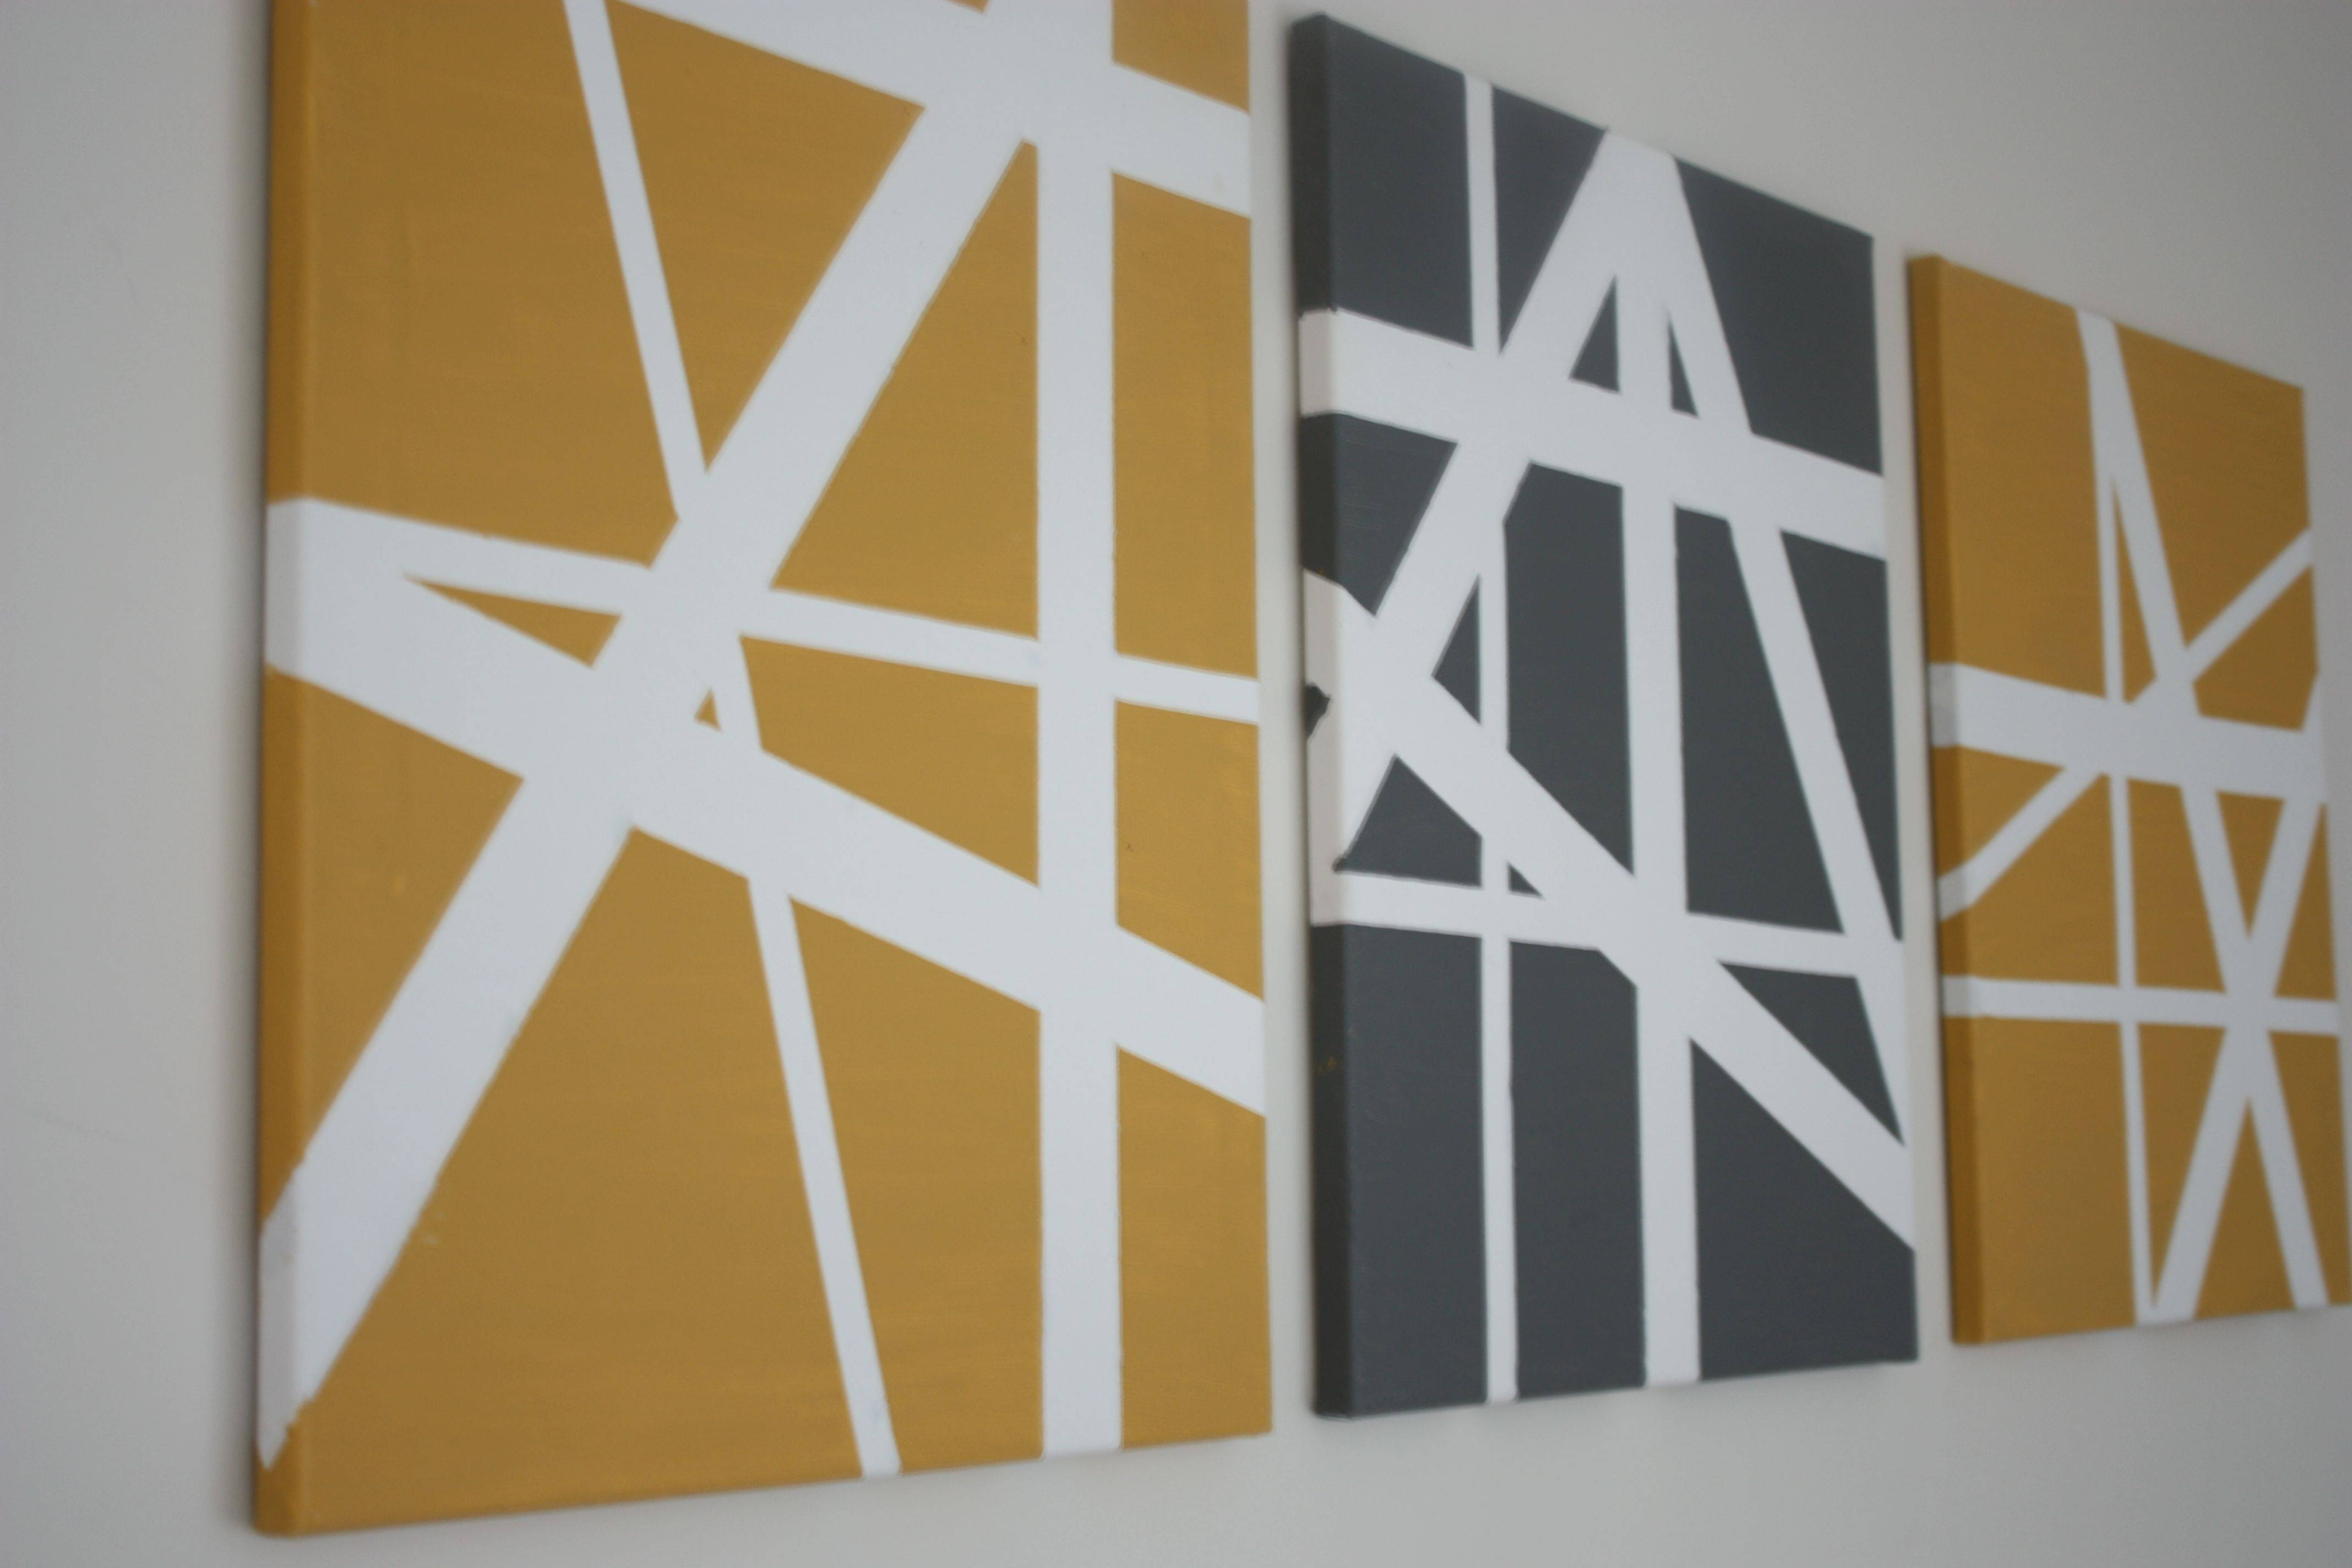 Diy Canvas Wall Art Architecture Decorating Ideas – Dma Homes | #31322 With Regard To Most Recent Small Canvas Wall Art (View 12 of 20)